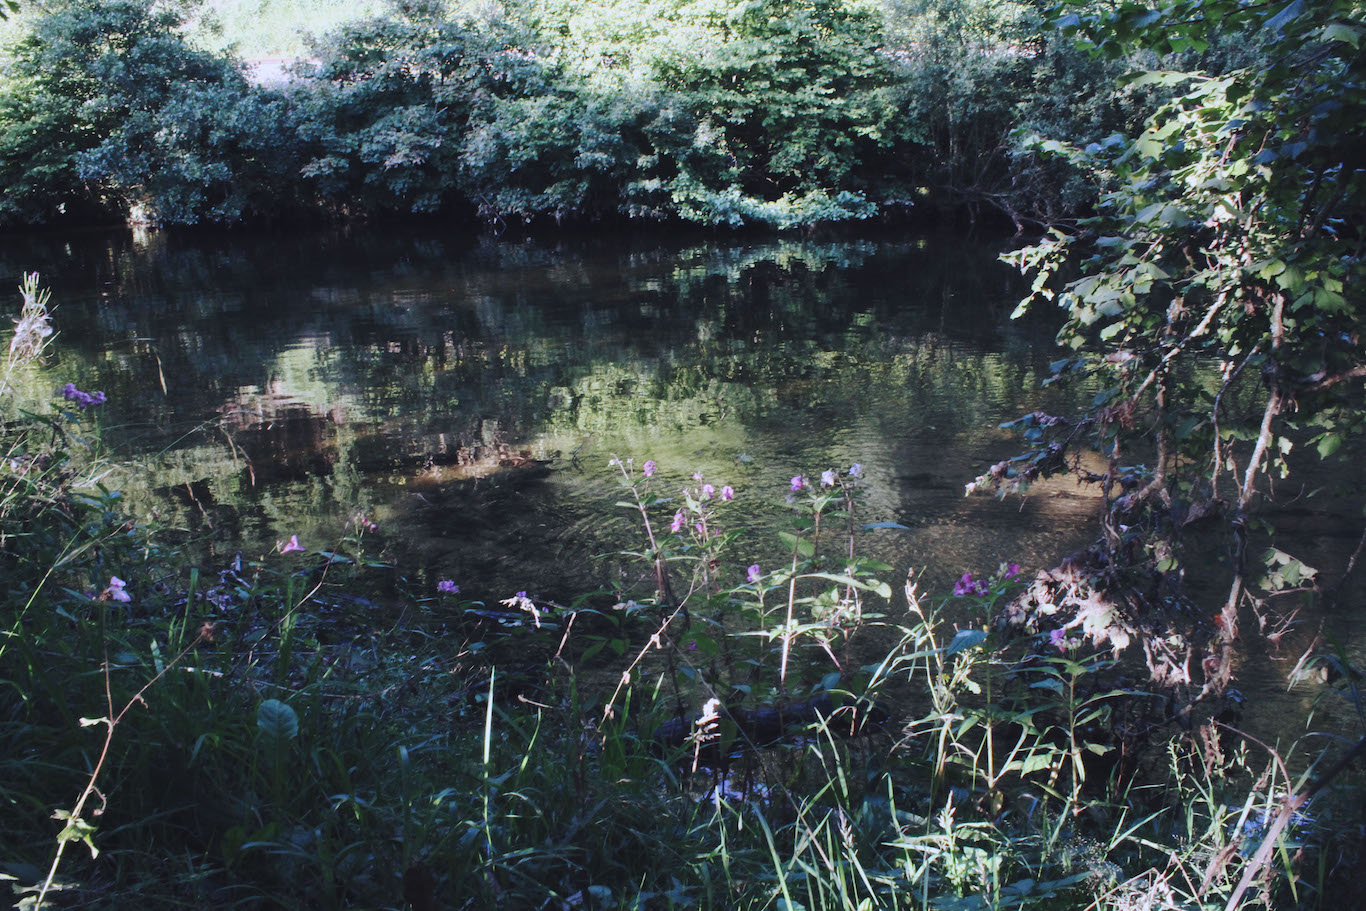 Wildflowers on the banks of the River Dart, Totnes